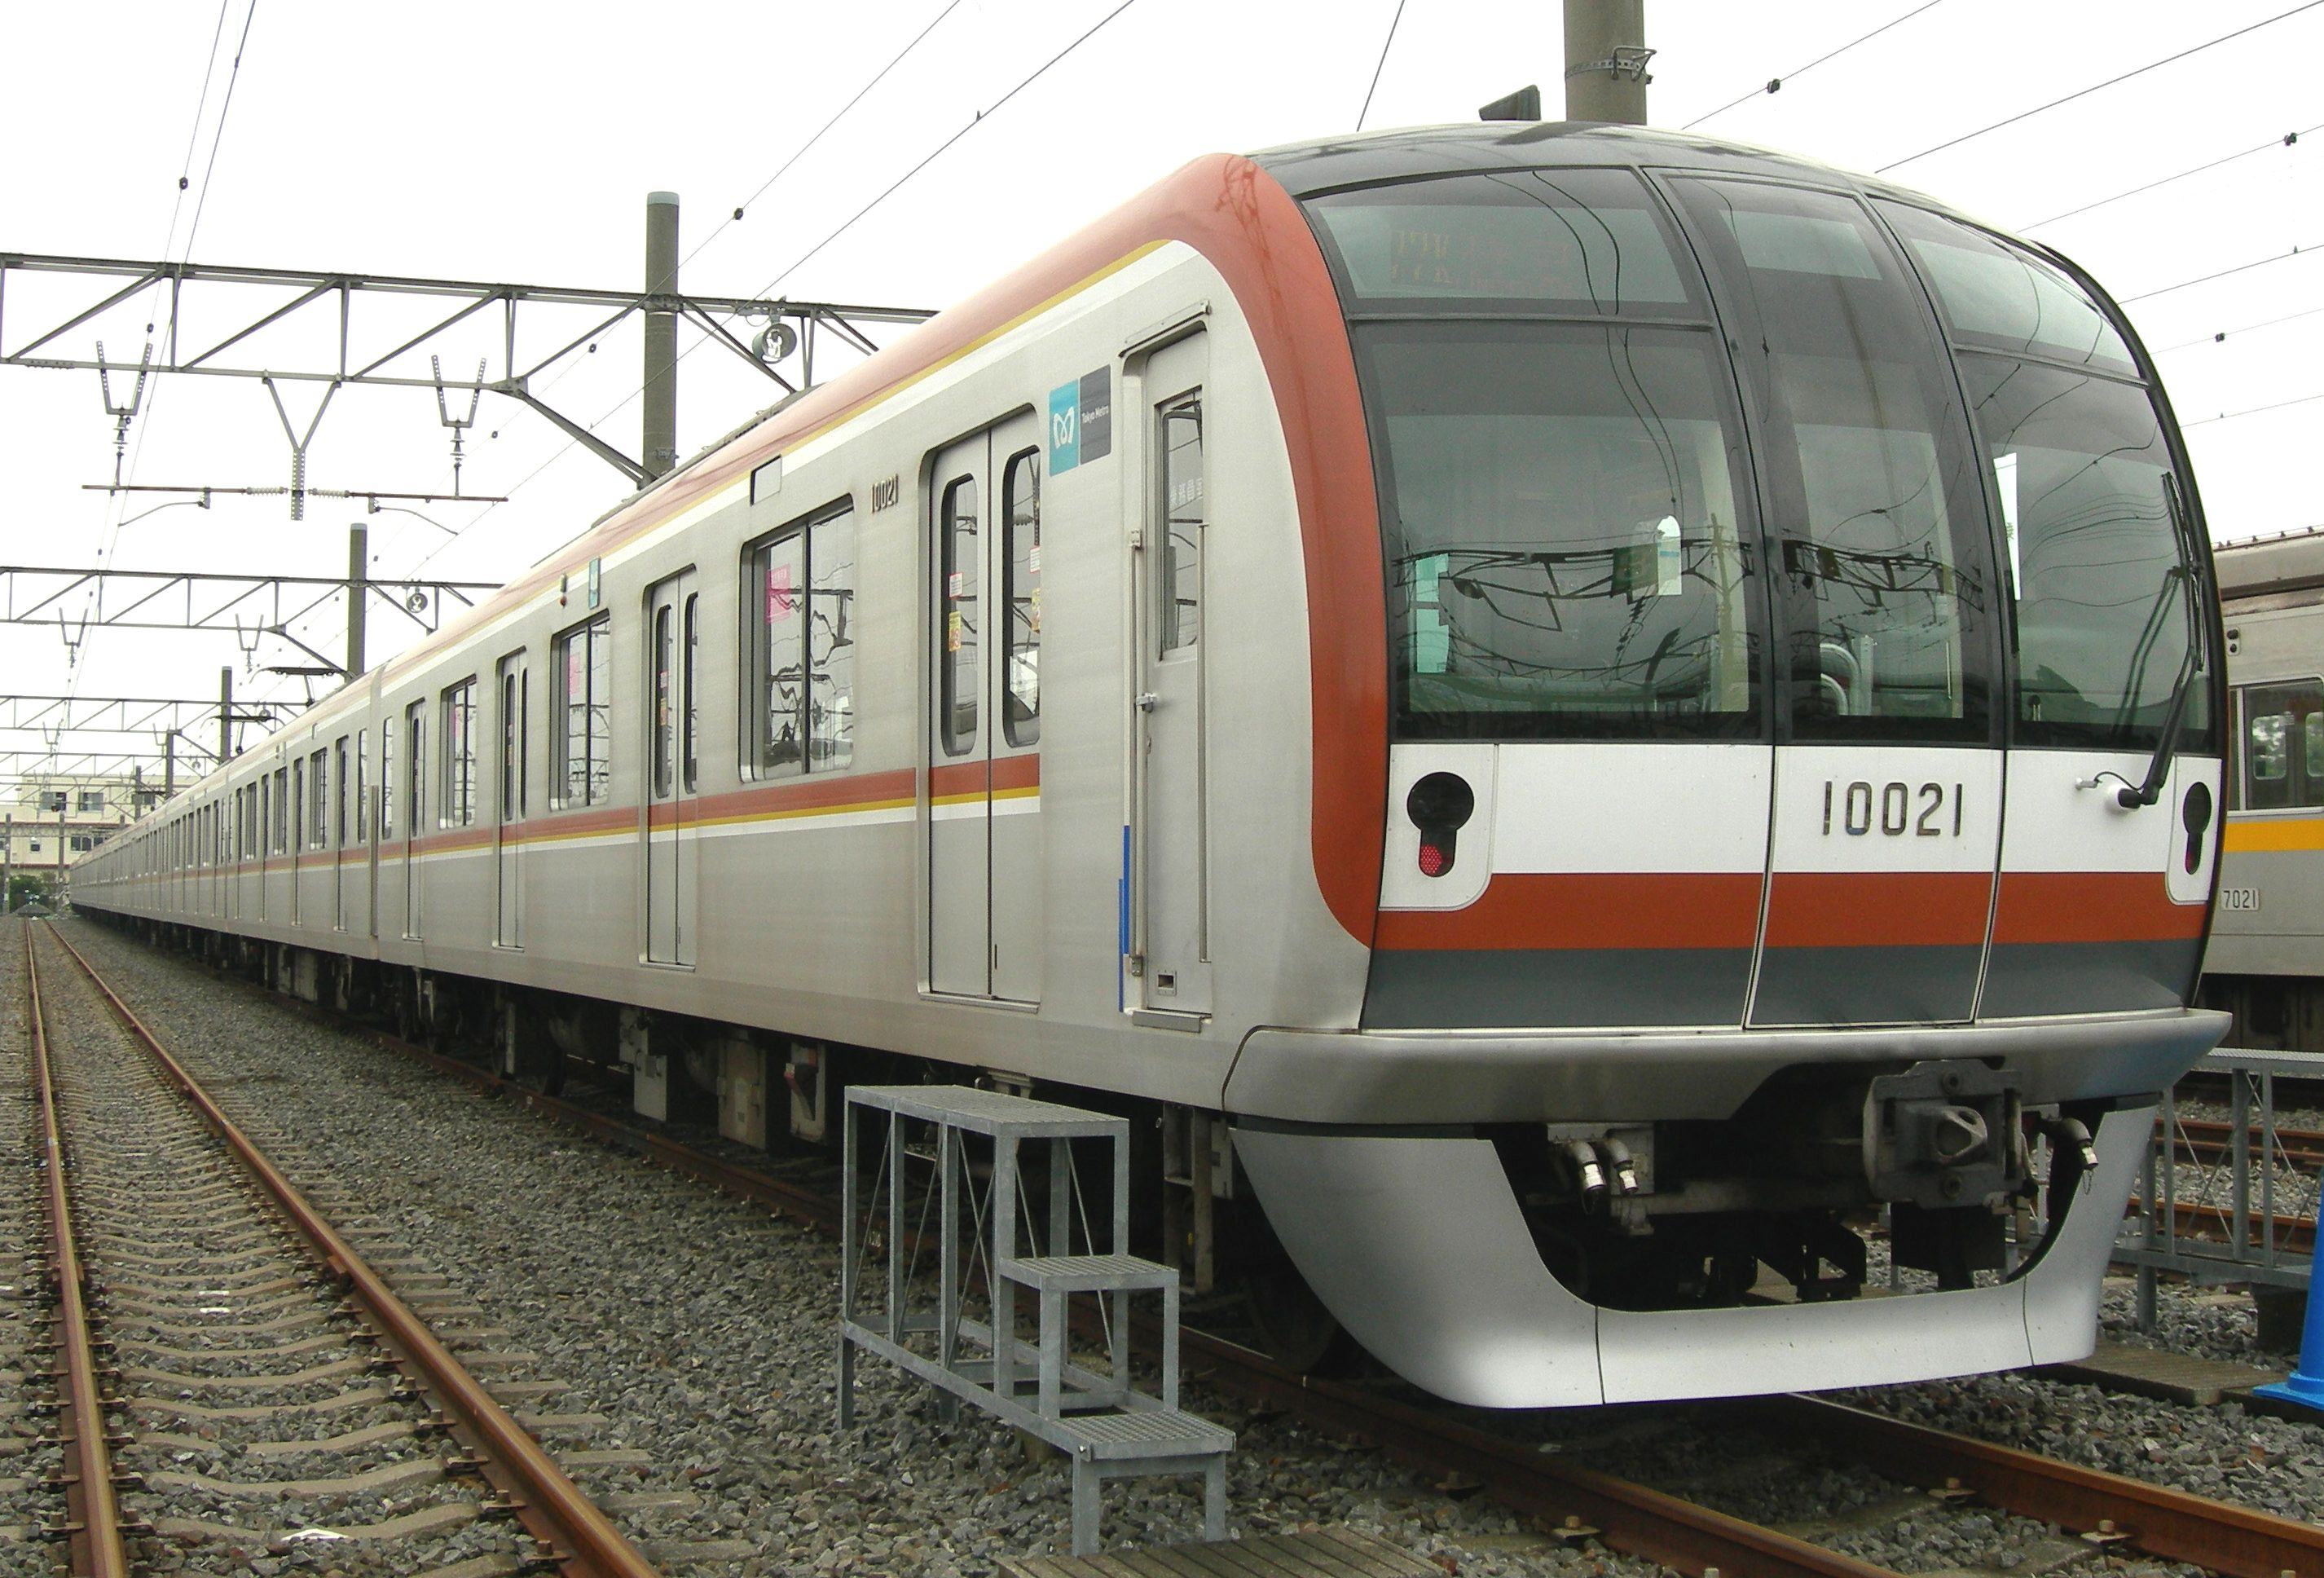 -https://upload.wikimedia.org/wikipedia/commons/1/1c/Tokyo-metro_10021.jpg